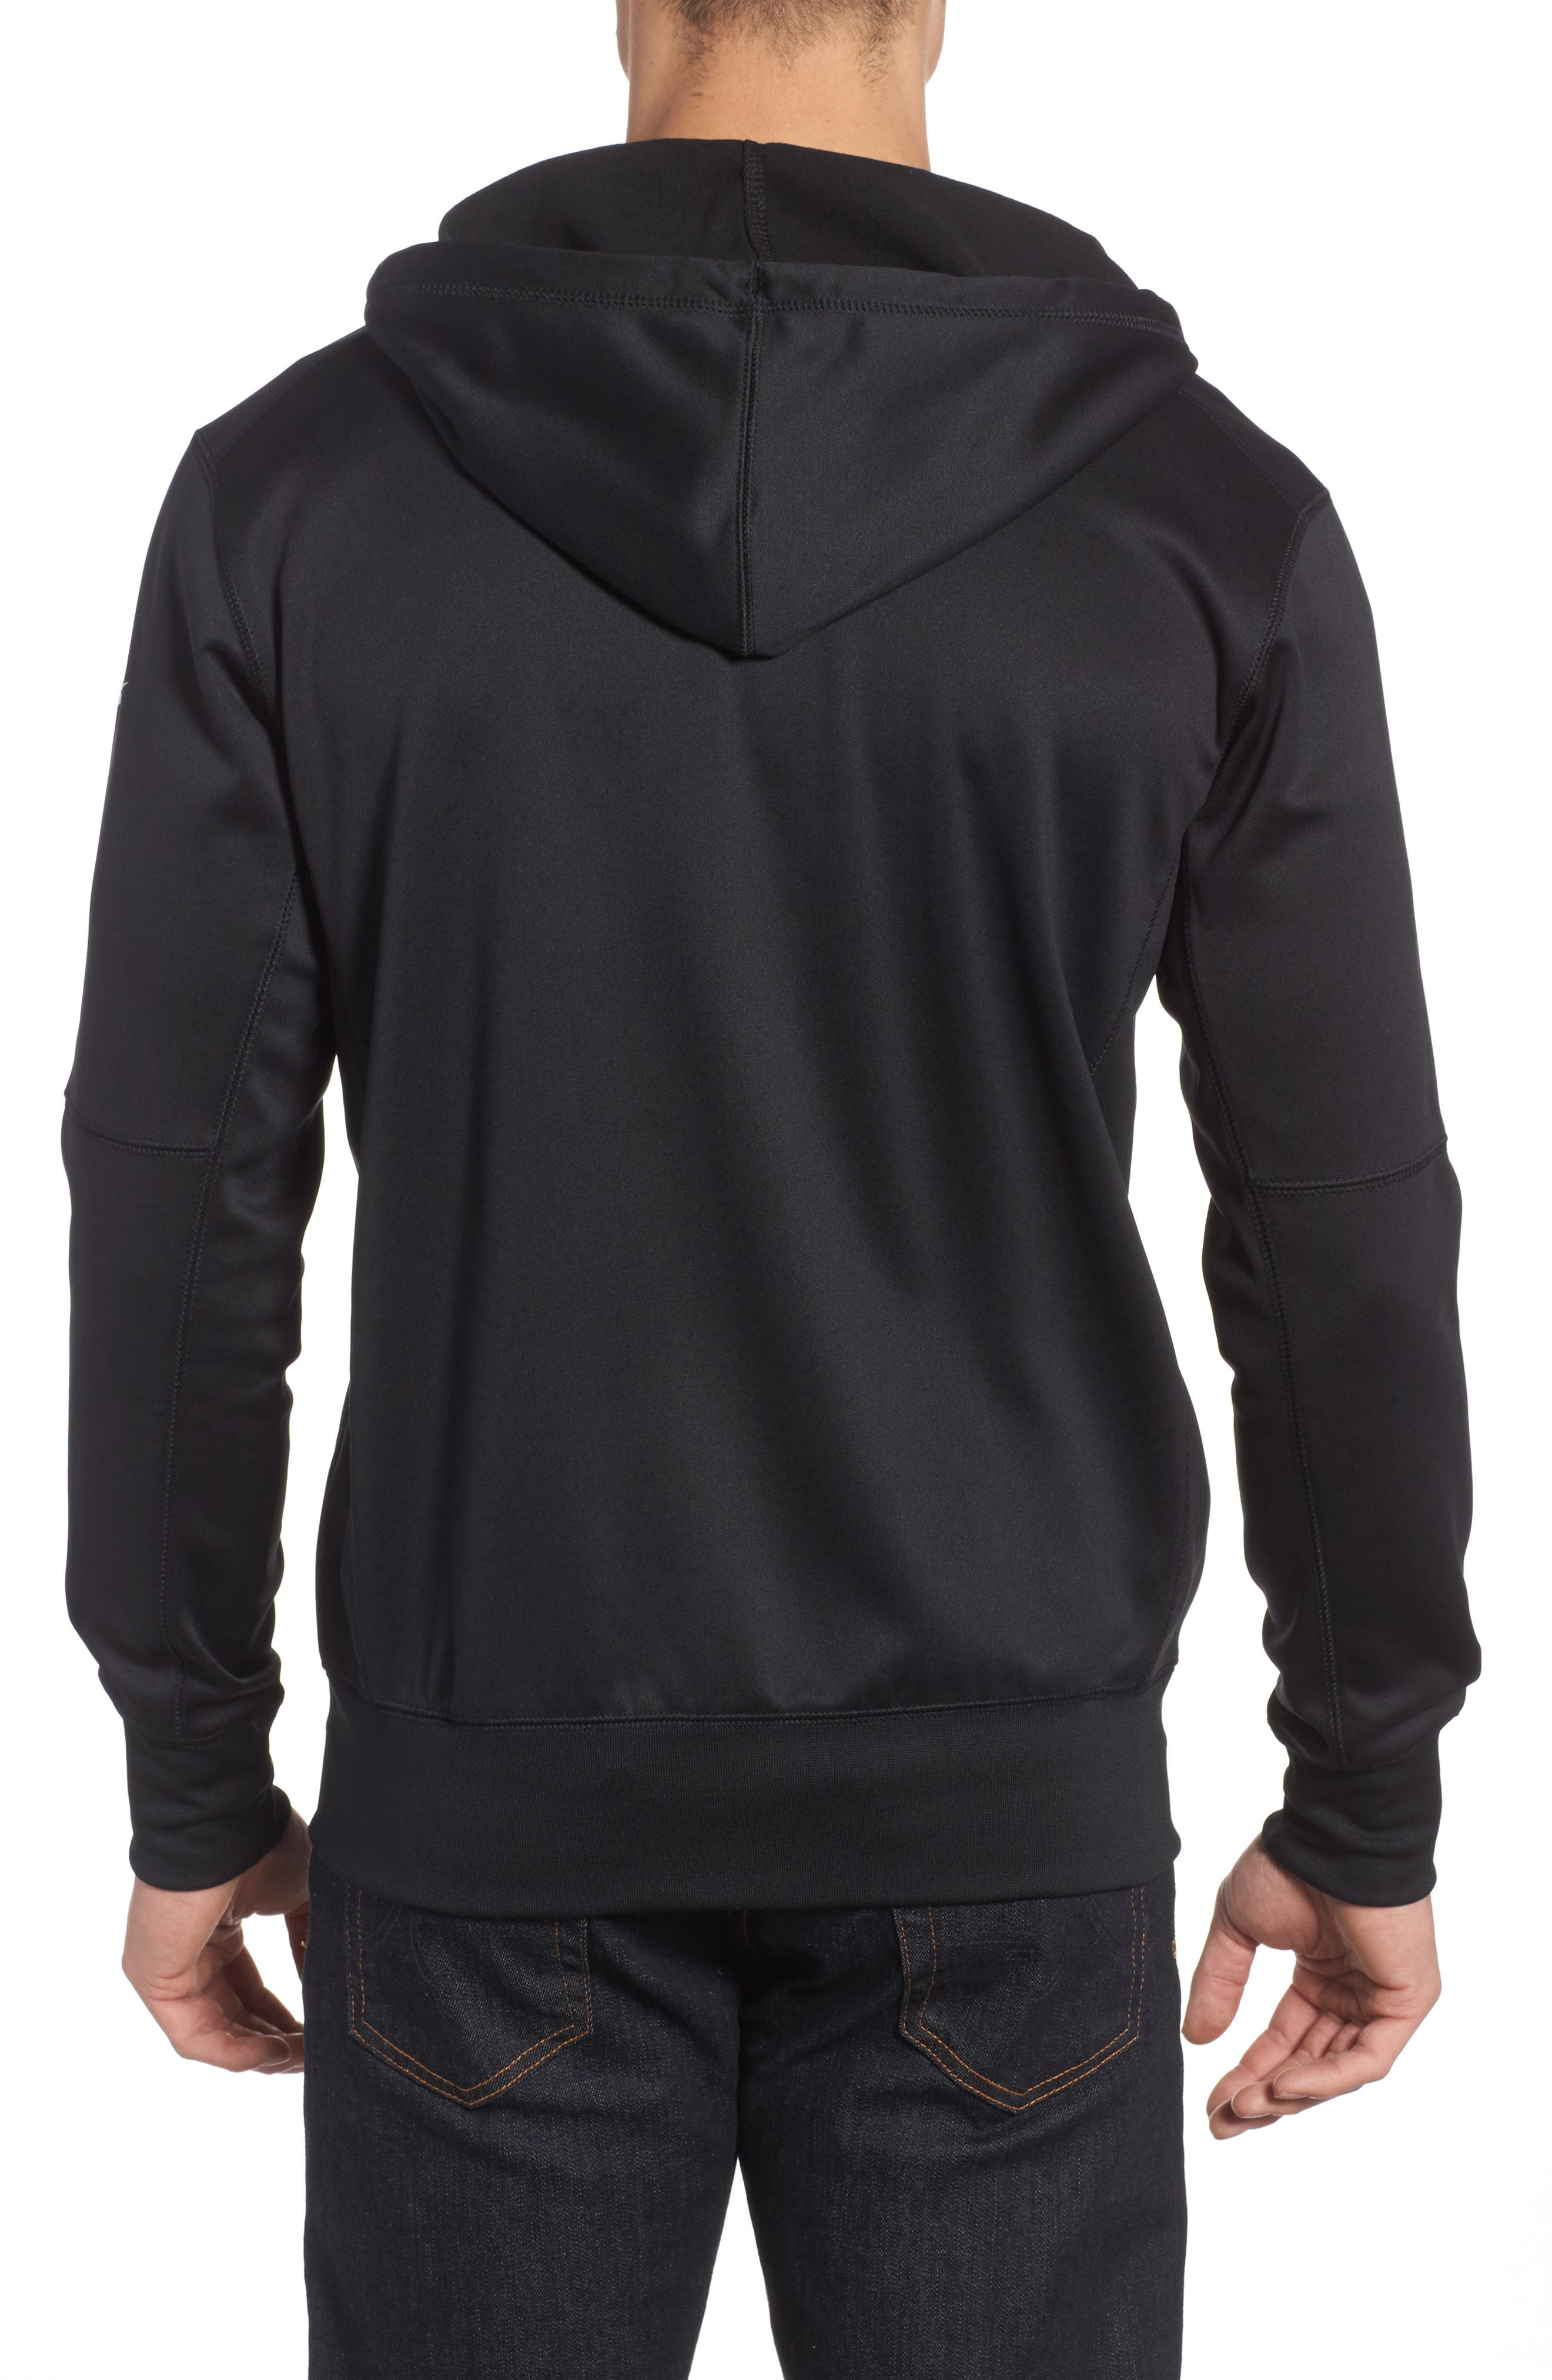 Therma-FIT NFL Graphic Zip Hoodie,                             Alternate thumbnail 2, color,                             010